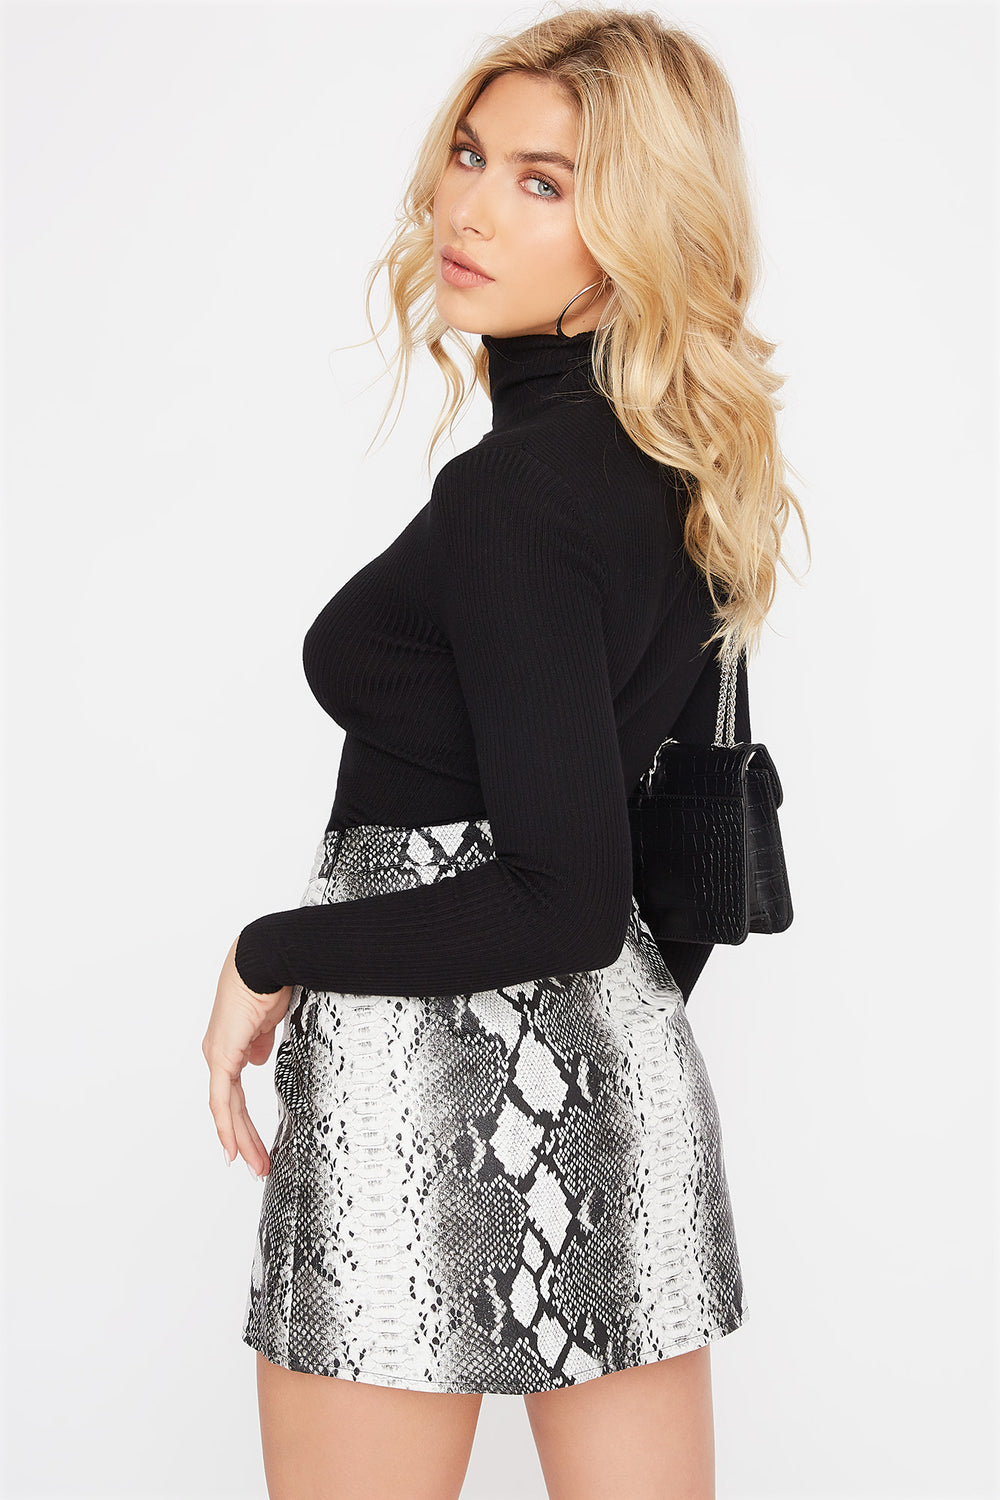 Snake Faux-Leather Mini Skirt Silver